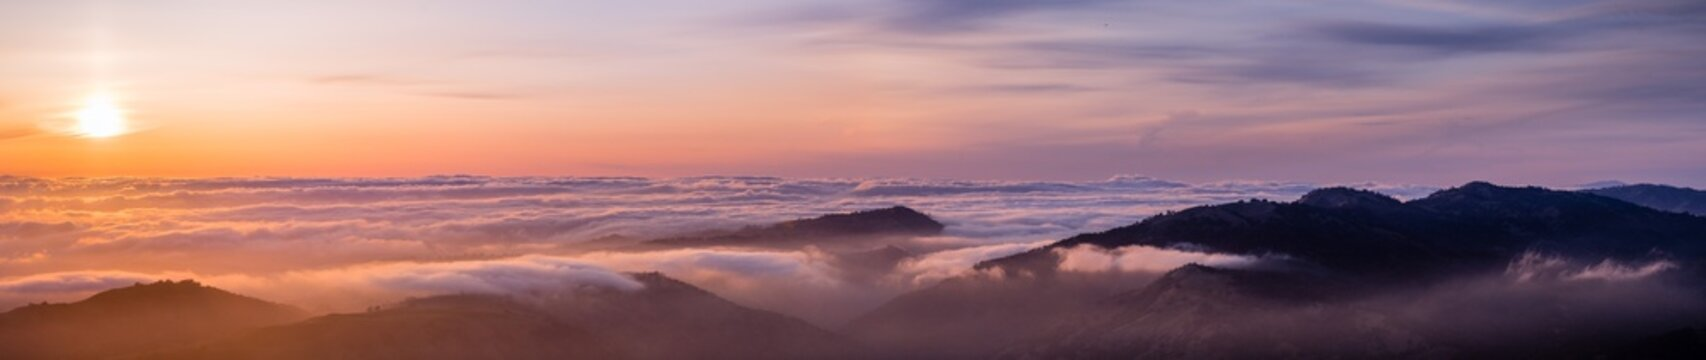 Panoramic view of a sunset over a sea of clouds covering south San Francisco bay area; mountain ridges in the foreground; view from Mt Hamilton, San Jose, Santa Clara county; California